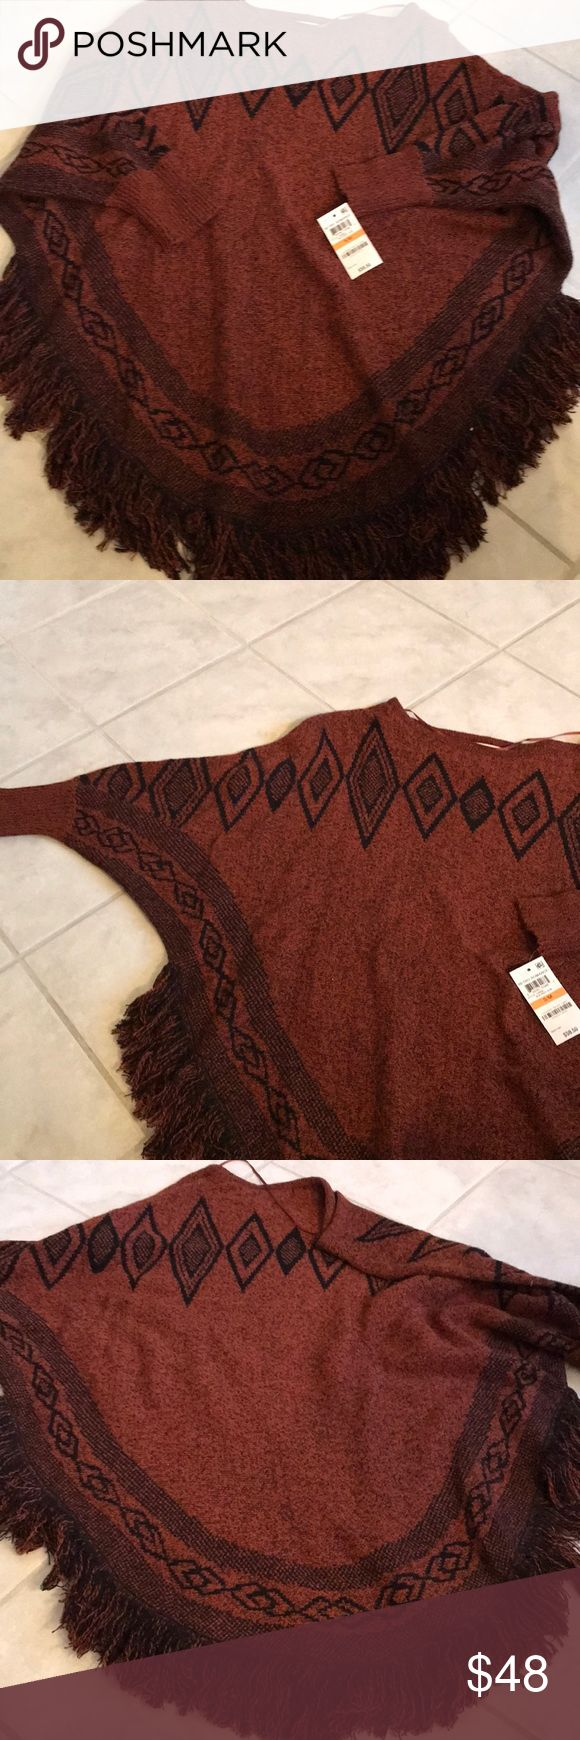 NWT batwing Aztec look shirt S/M size Gorgeous color for the fall. Brand new Never worn. No offers will be accepted. Already discounted. Thank you. Style & Co Sweaters Shrugs & Ponchos